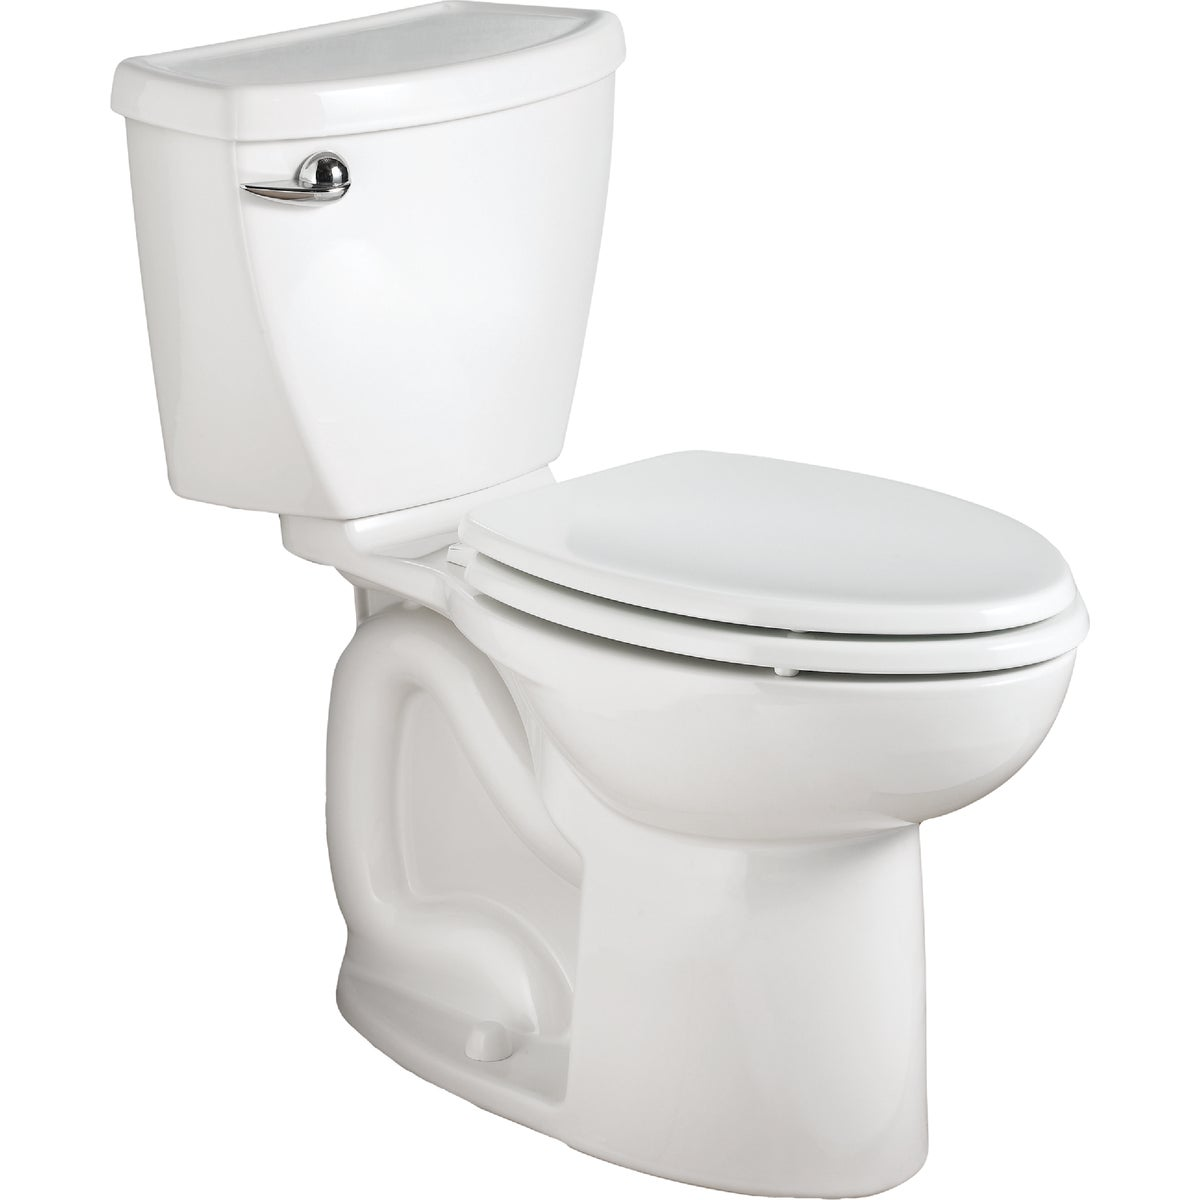 WHITE ADA TOILET-TO-GO - 3378.128ST.020 by American Standard